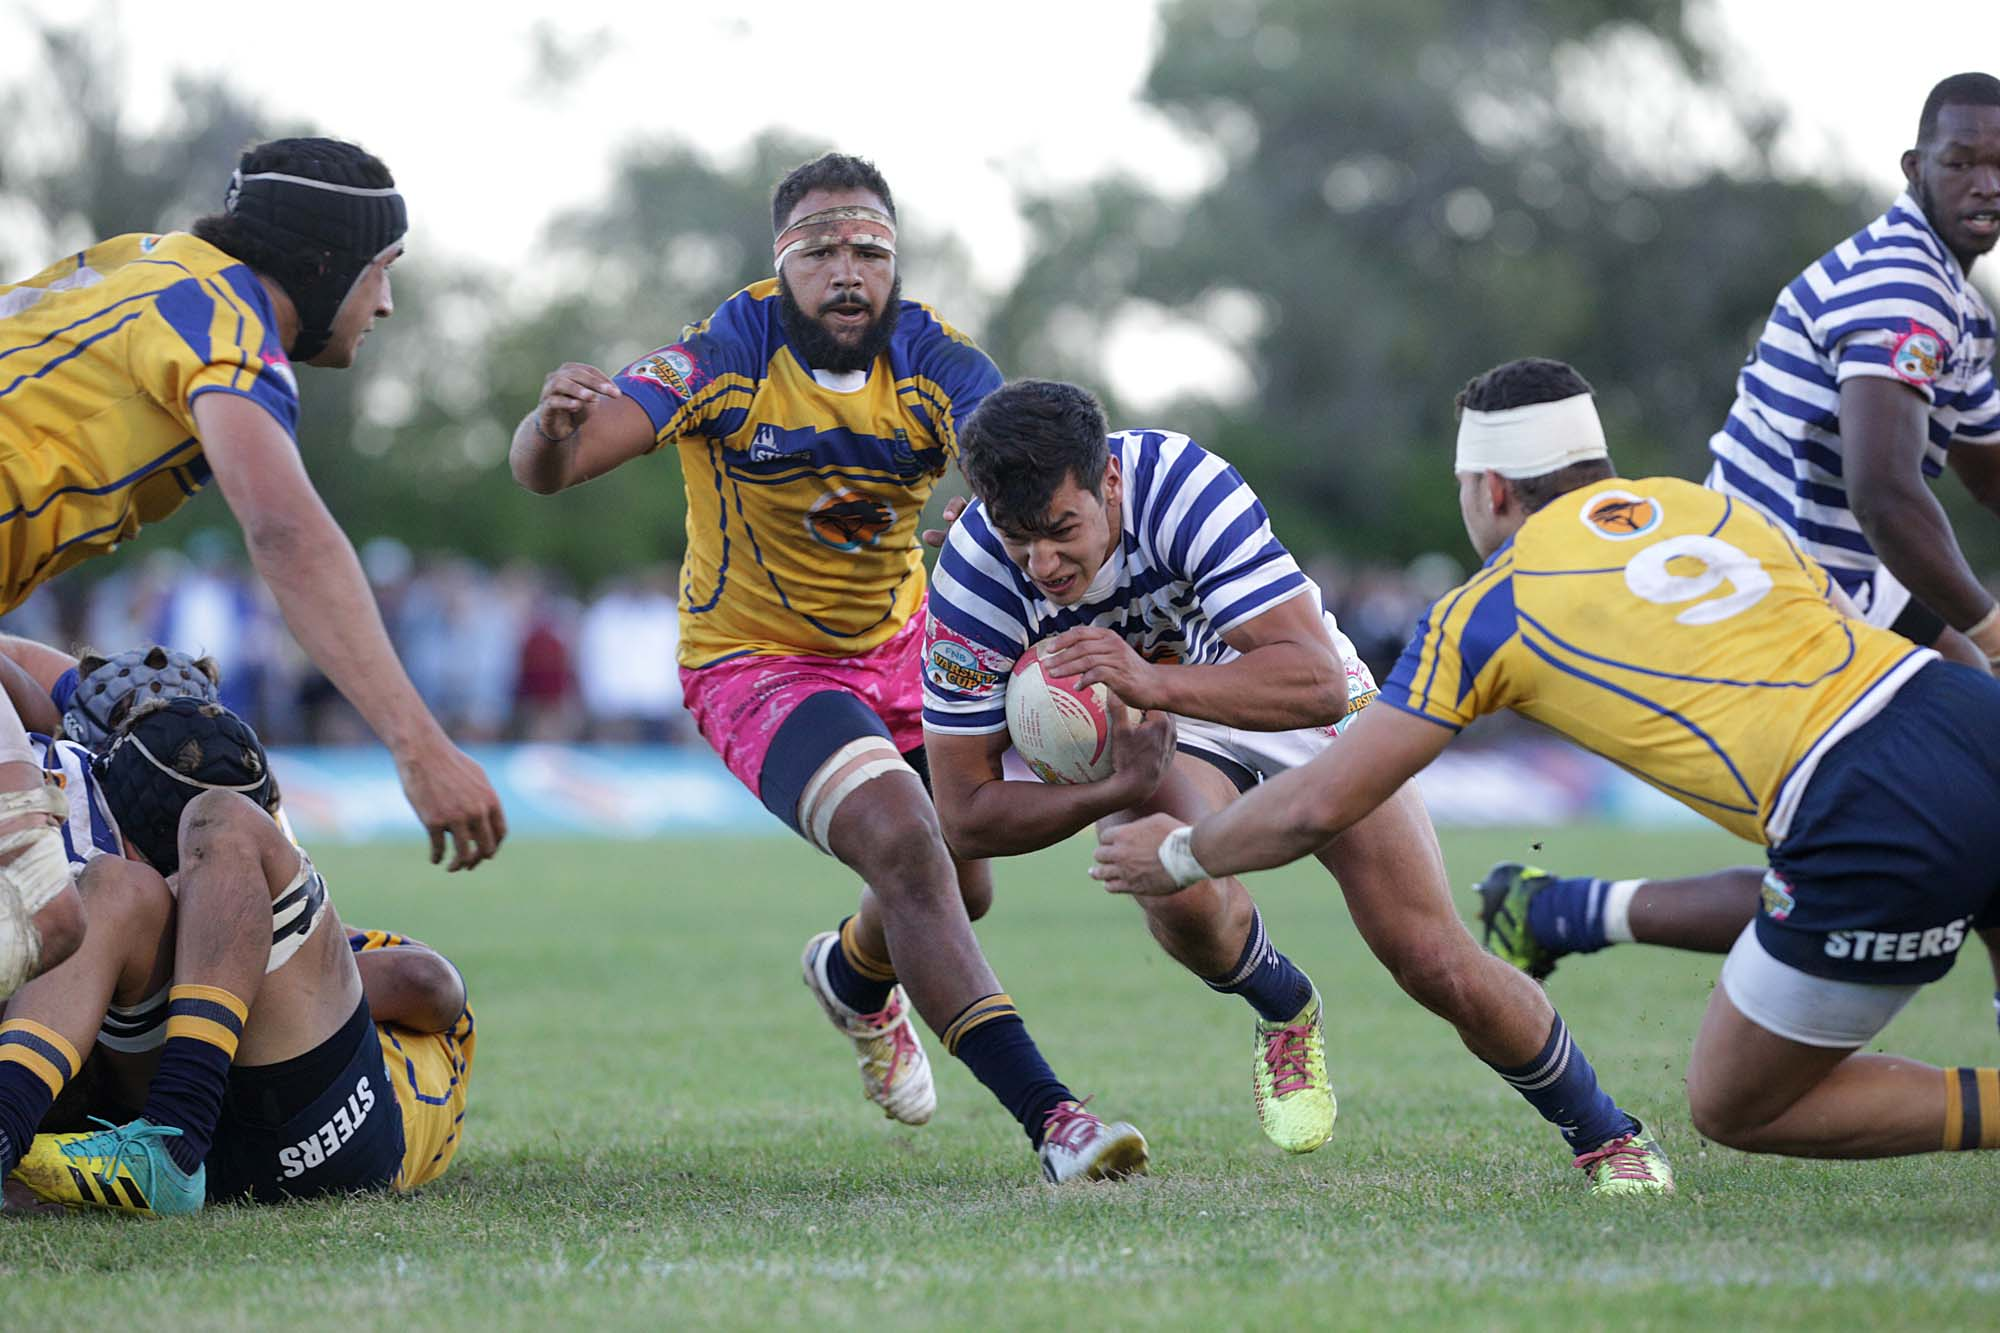 The Ikey Tigers kicked off the 2019 Varsity Cup season with a nail-biting 32–24 victory over Cape rivals University of the Western Cape on 4 February.